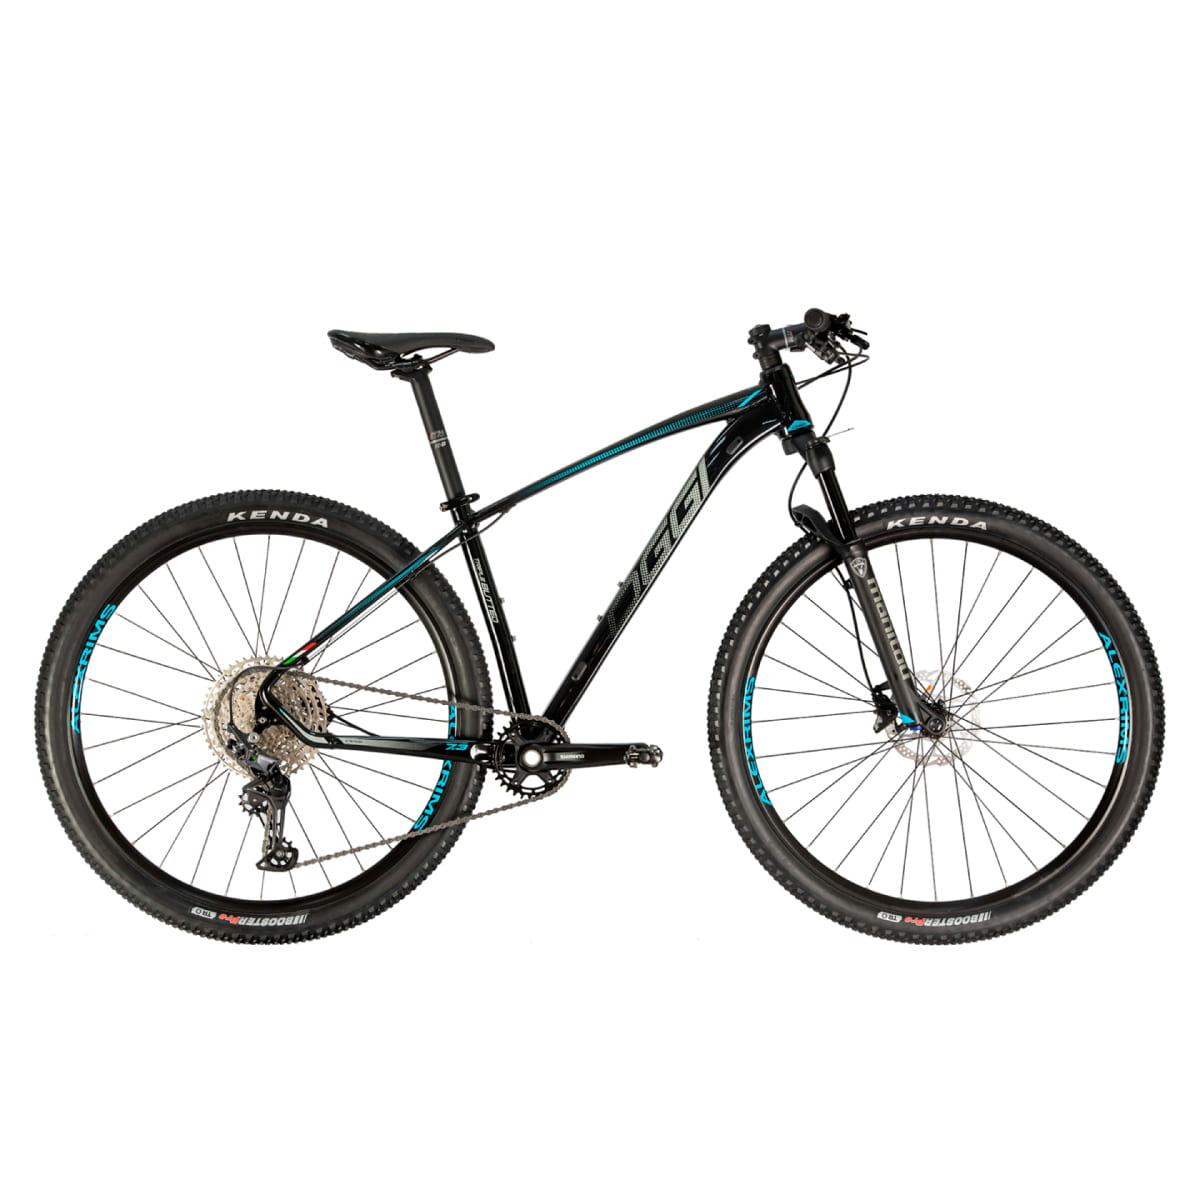 Bike Oggi 7.3 2021 Big Wheel Shimano Deore 12v Preto Azul